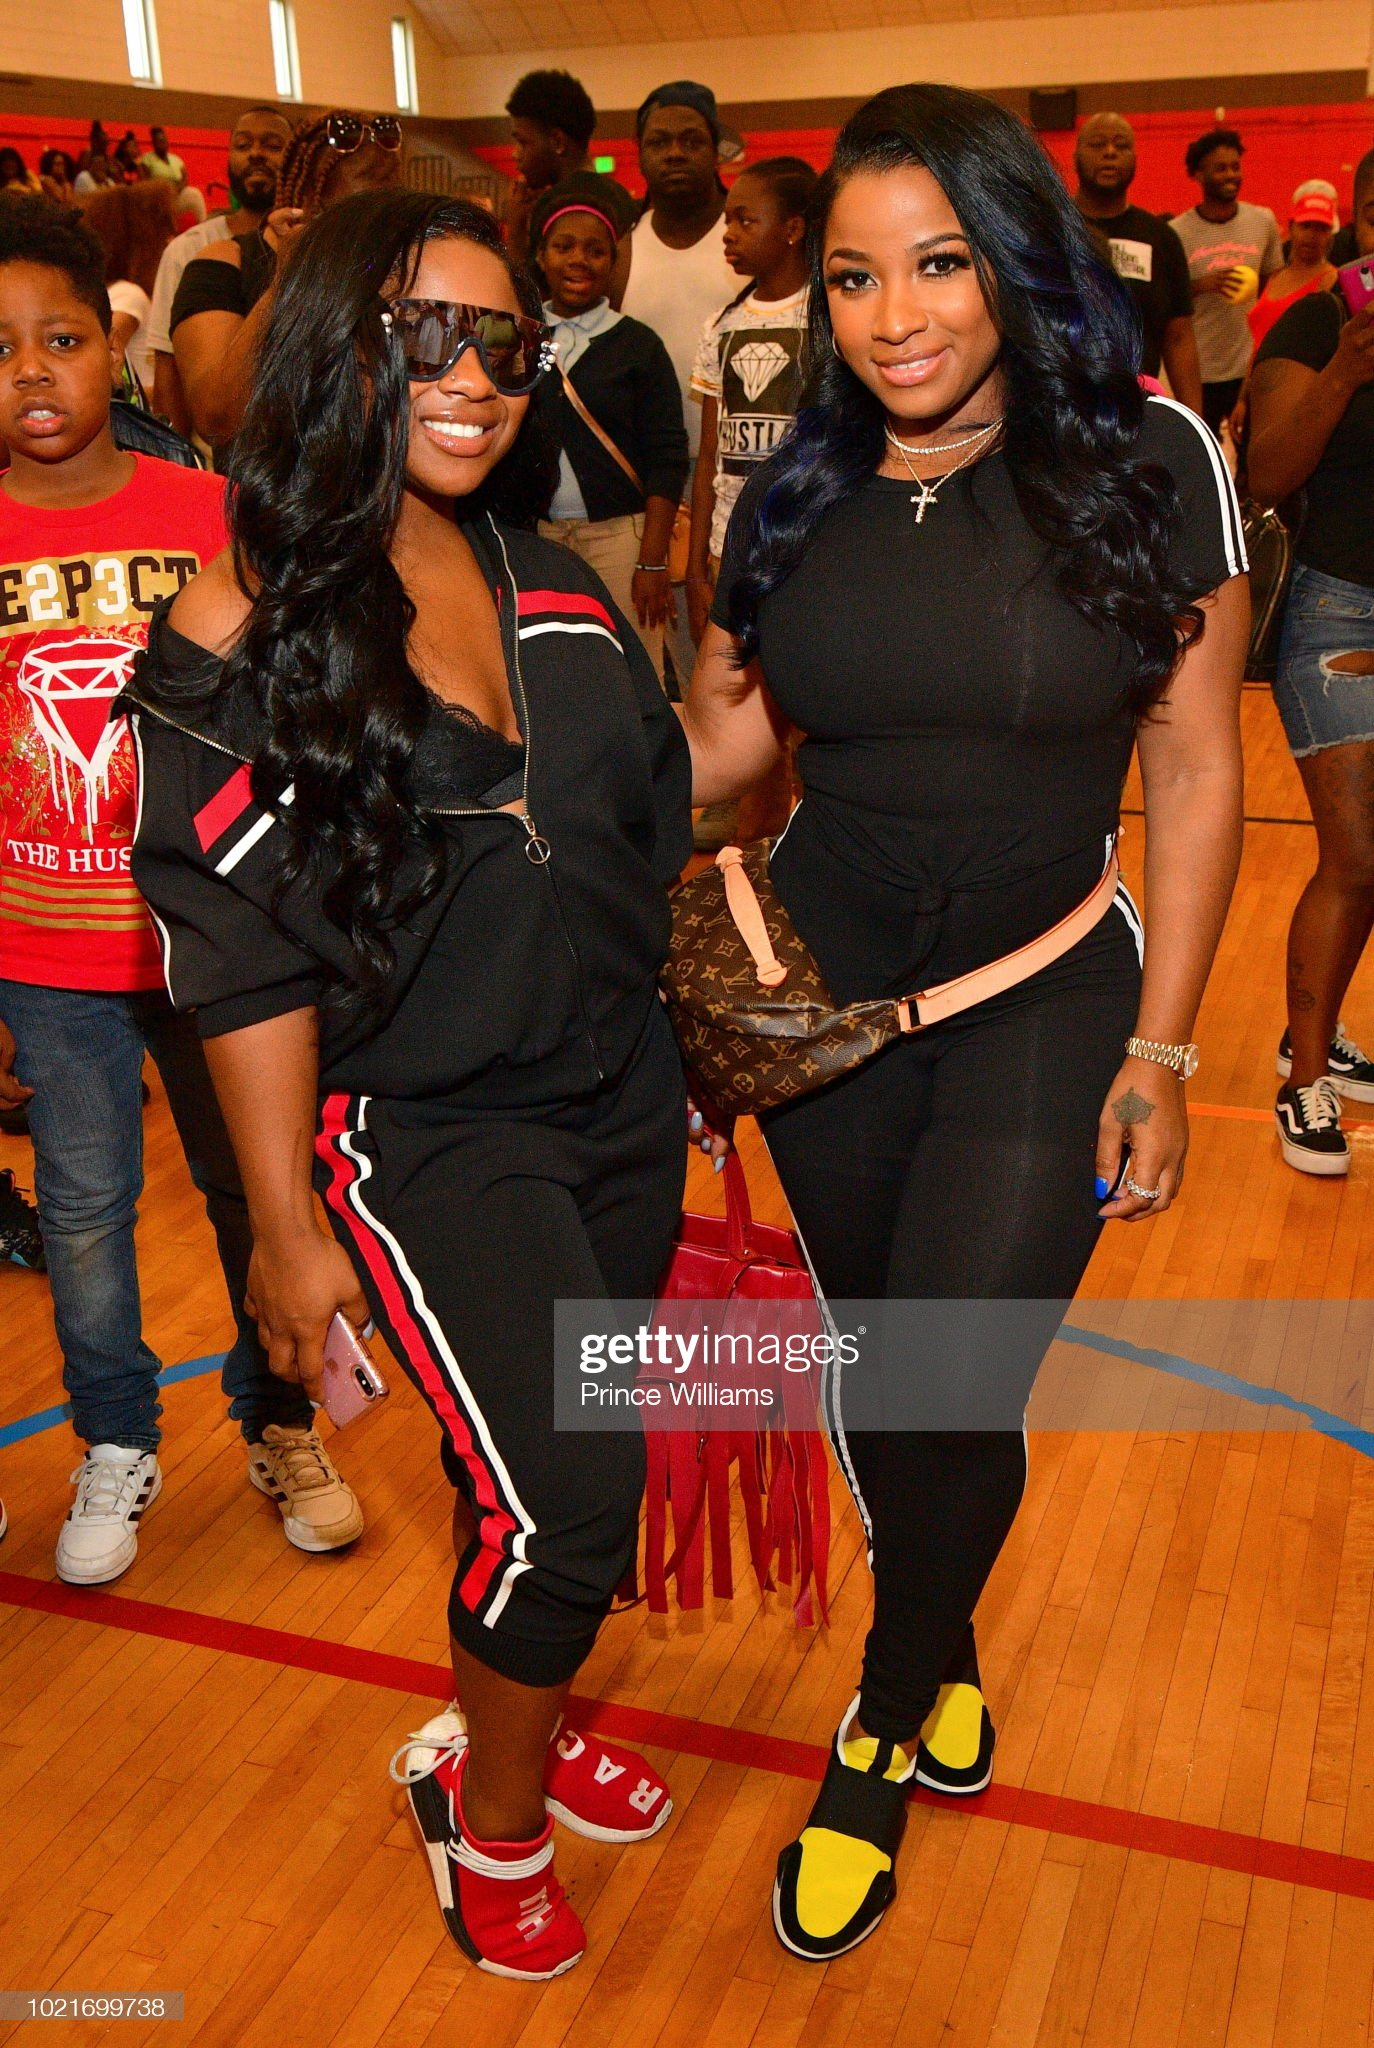 ¿Cuánto mide Toya Wright (Antonia)? - Real height Reginae-carter-and-antonia-wright-attend-the-back-2-school-feild-day-picture-id1021699738?s=2048x2048